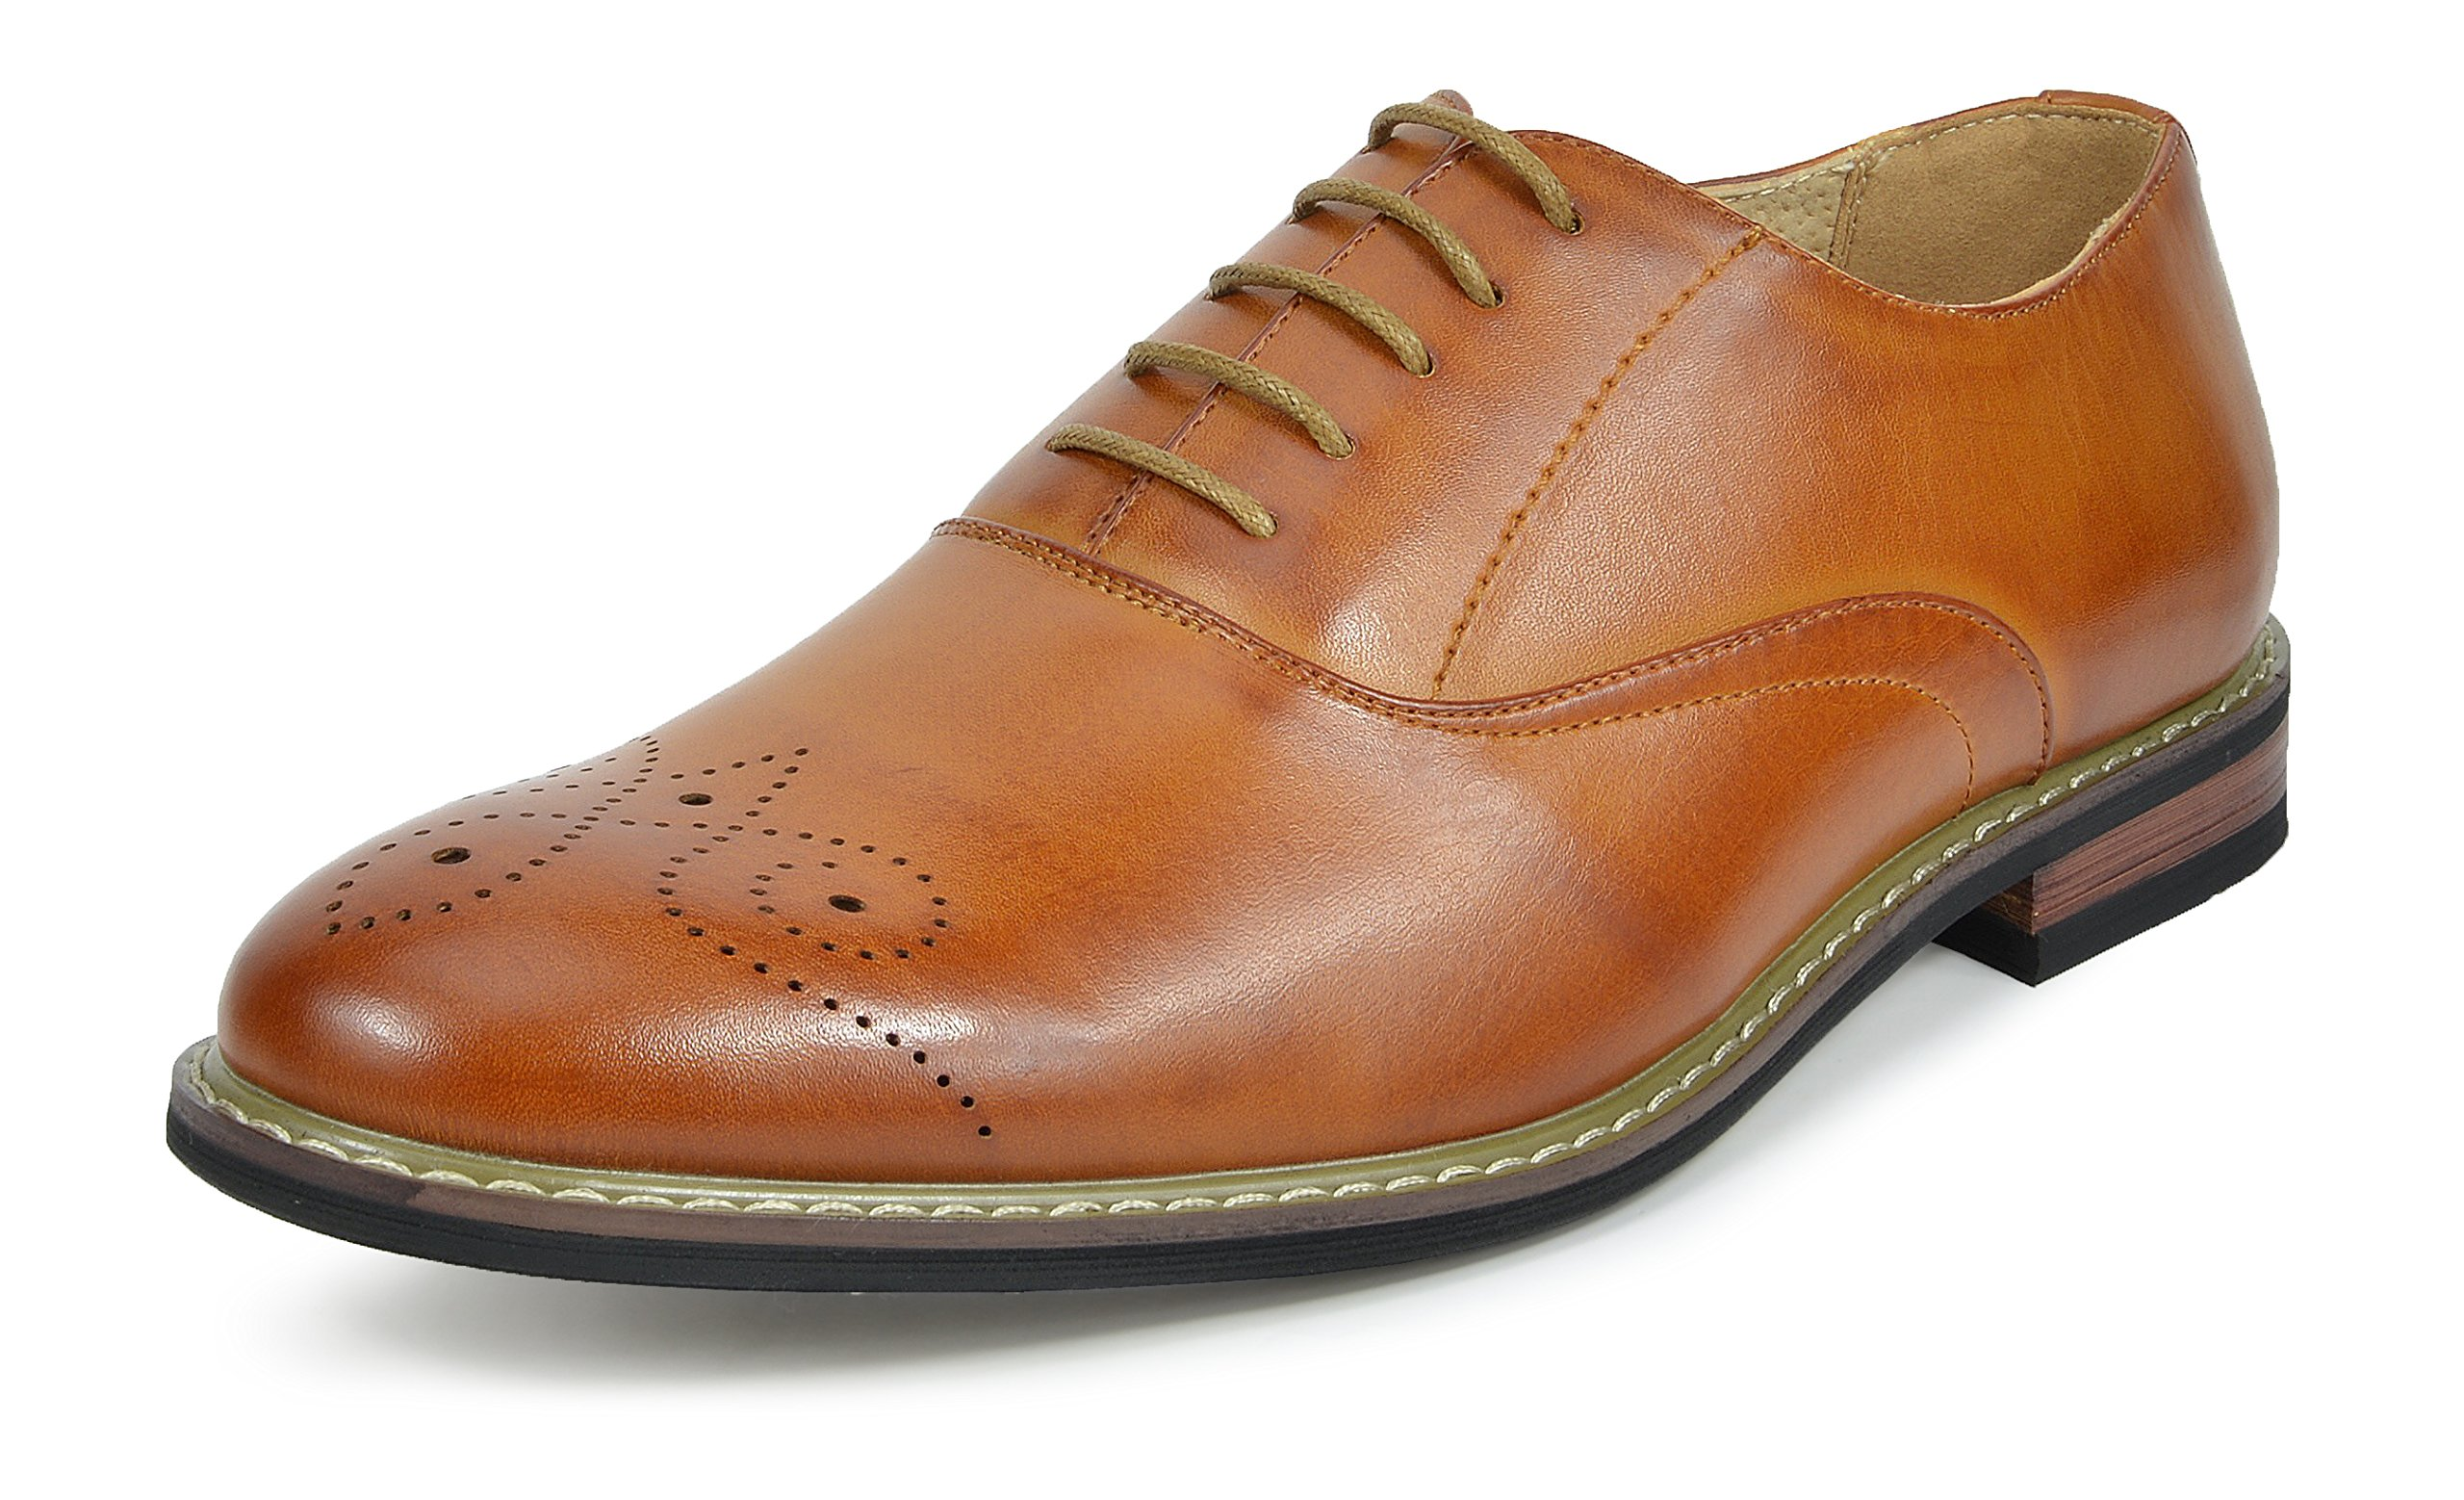 Bruno Marc PRINCE-12 Men's Oxford Modern Classic Brogue Lace Up Leather Lined Perforated Dress Oxfords Shoes Brown Size 7